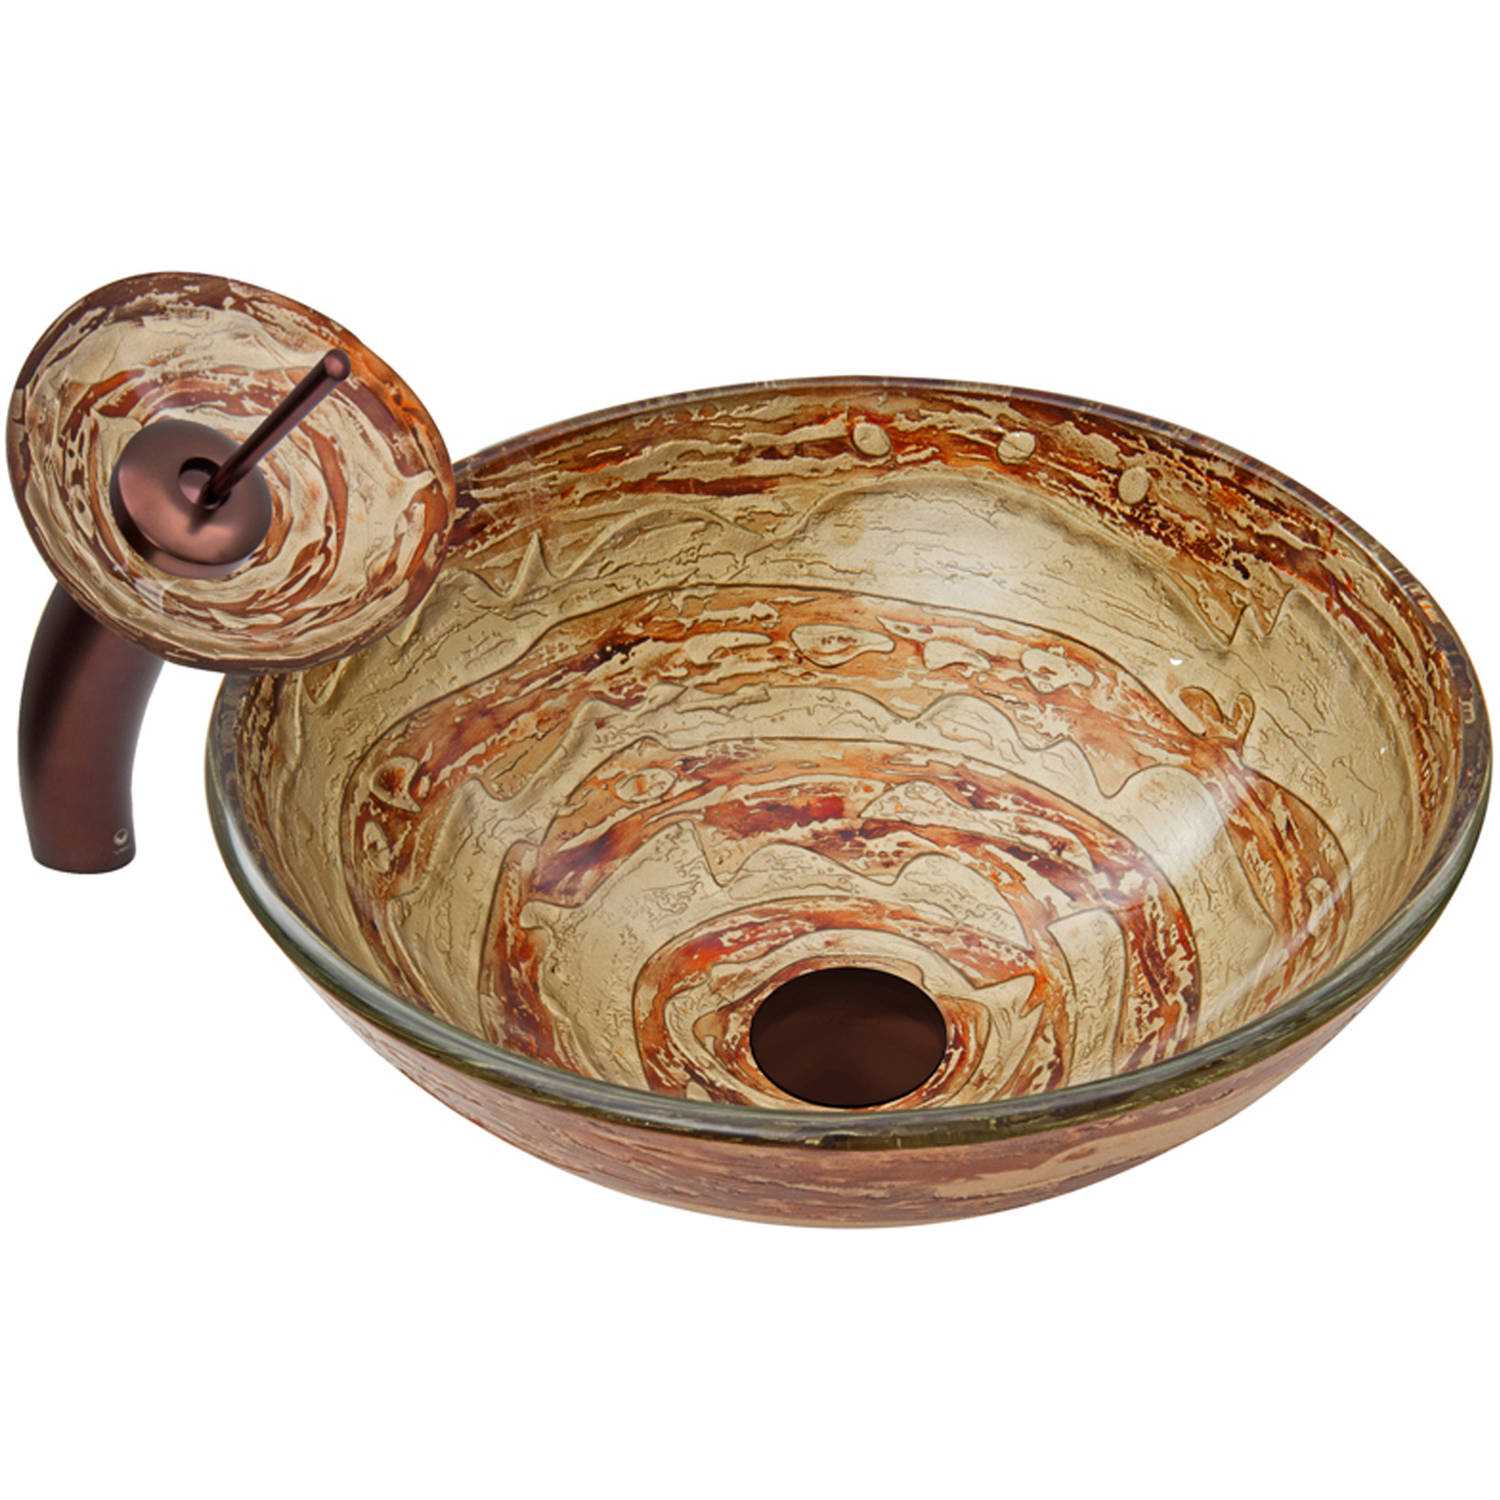 VIGO Mocha Swirl Glass Vessel Sink and Waterfall Faucet Set, Oil Rubbed Bronze Finish